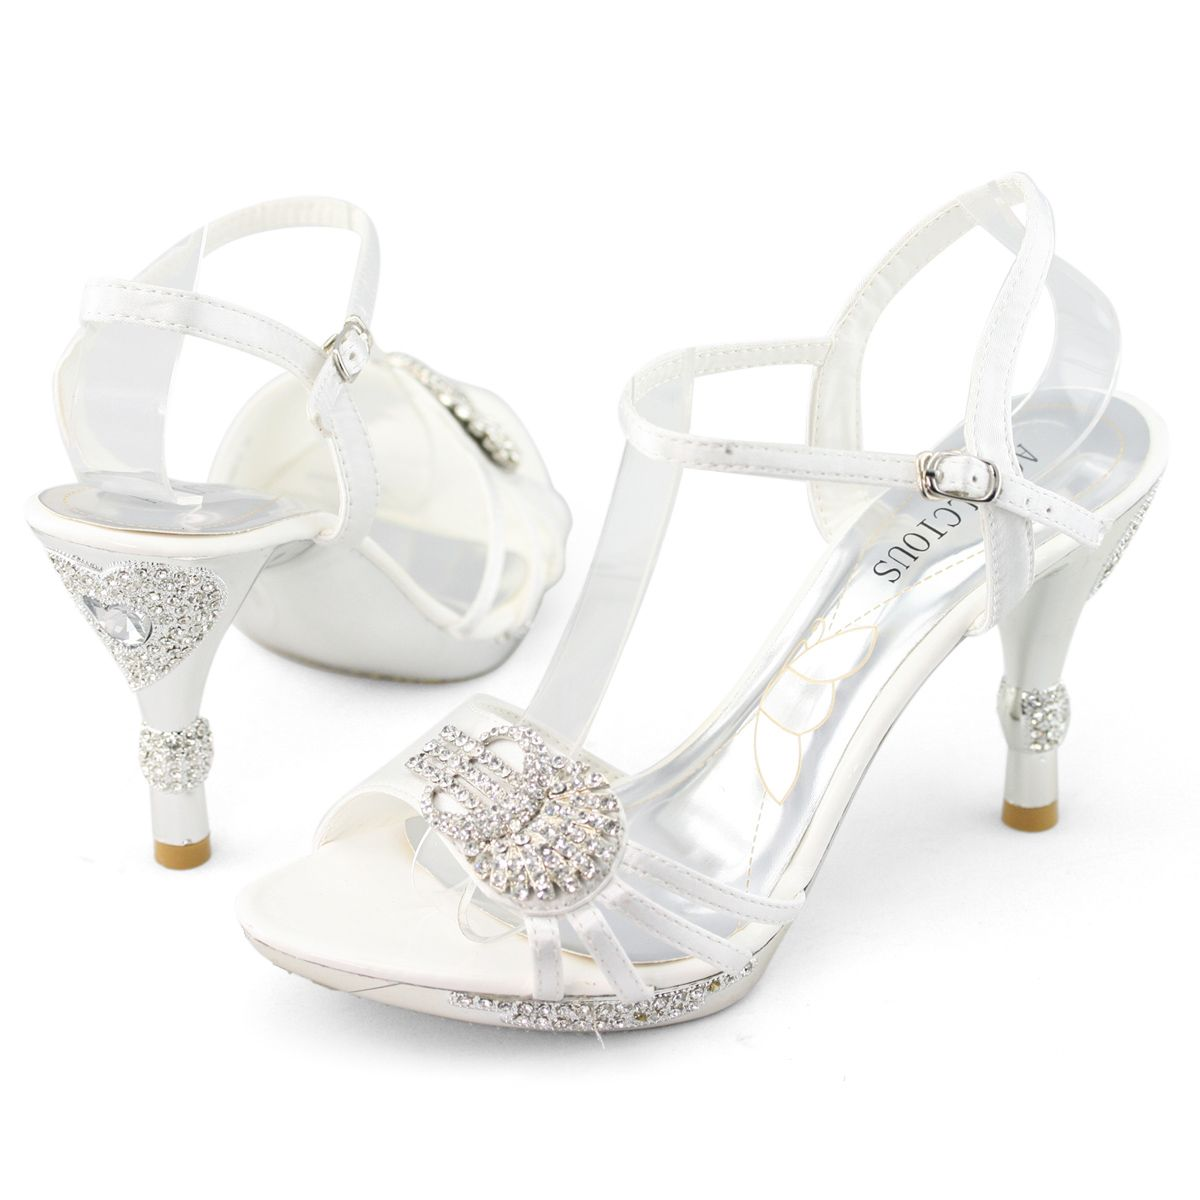 Details about Womens white low heel diamond pumps wedding